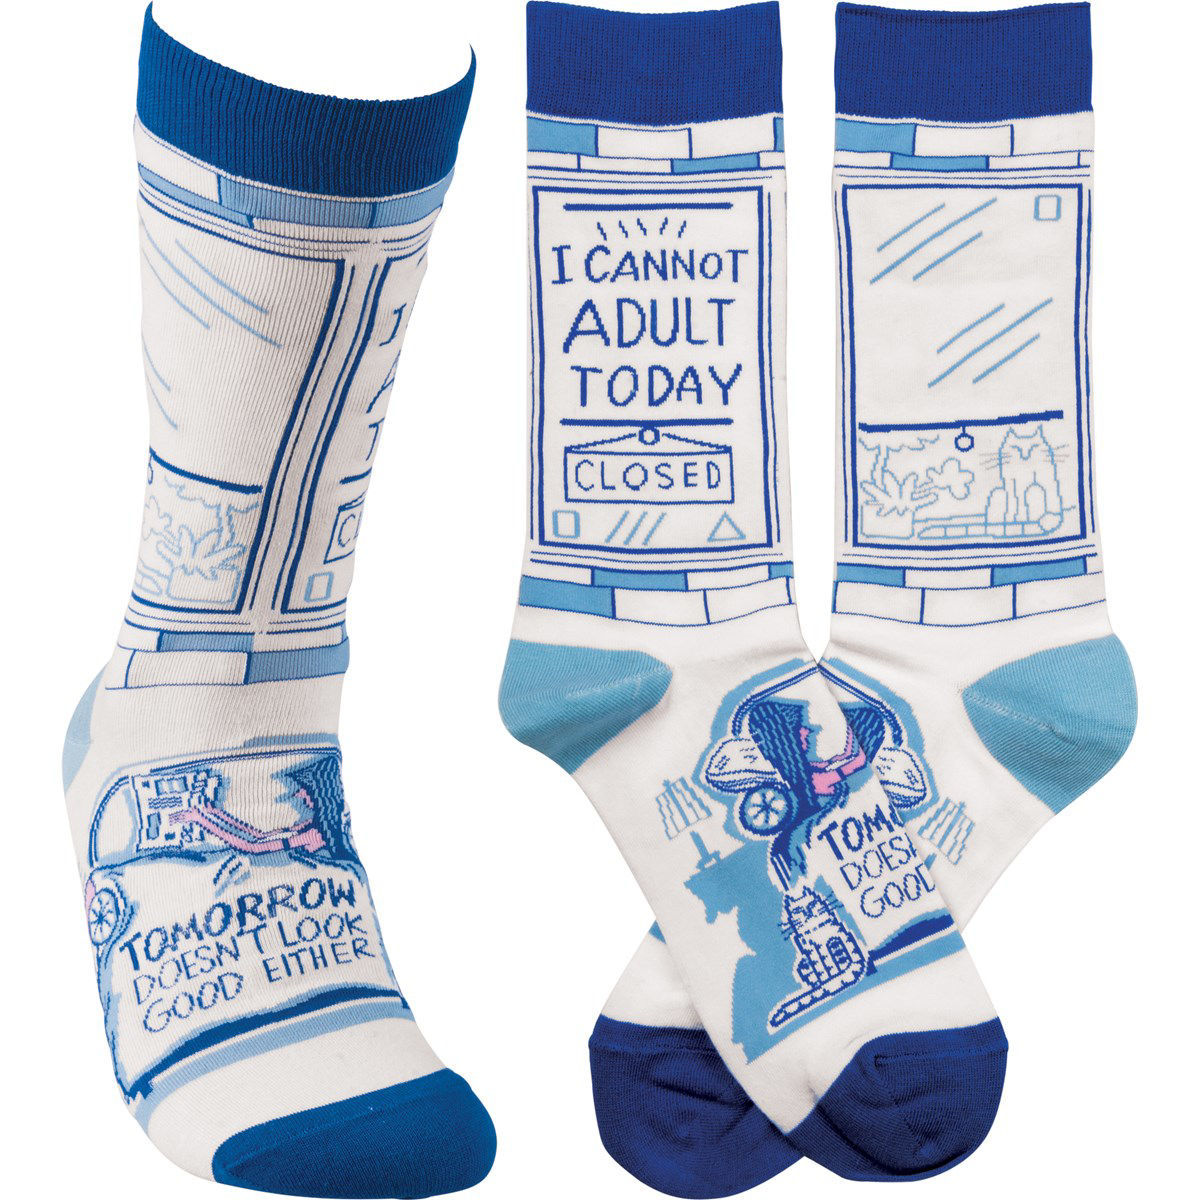 I Cannot Adult Today Socks by Primitives by Kathy